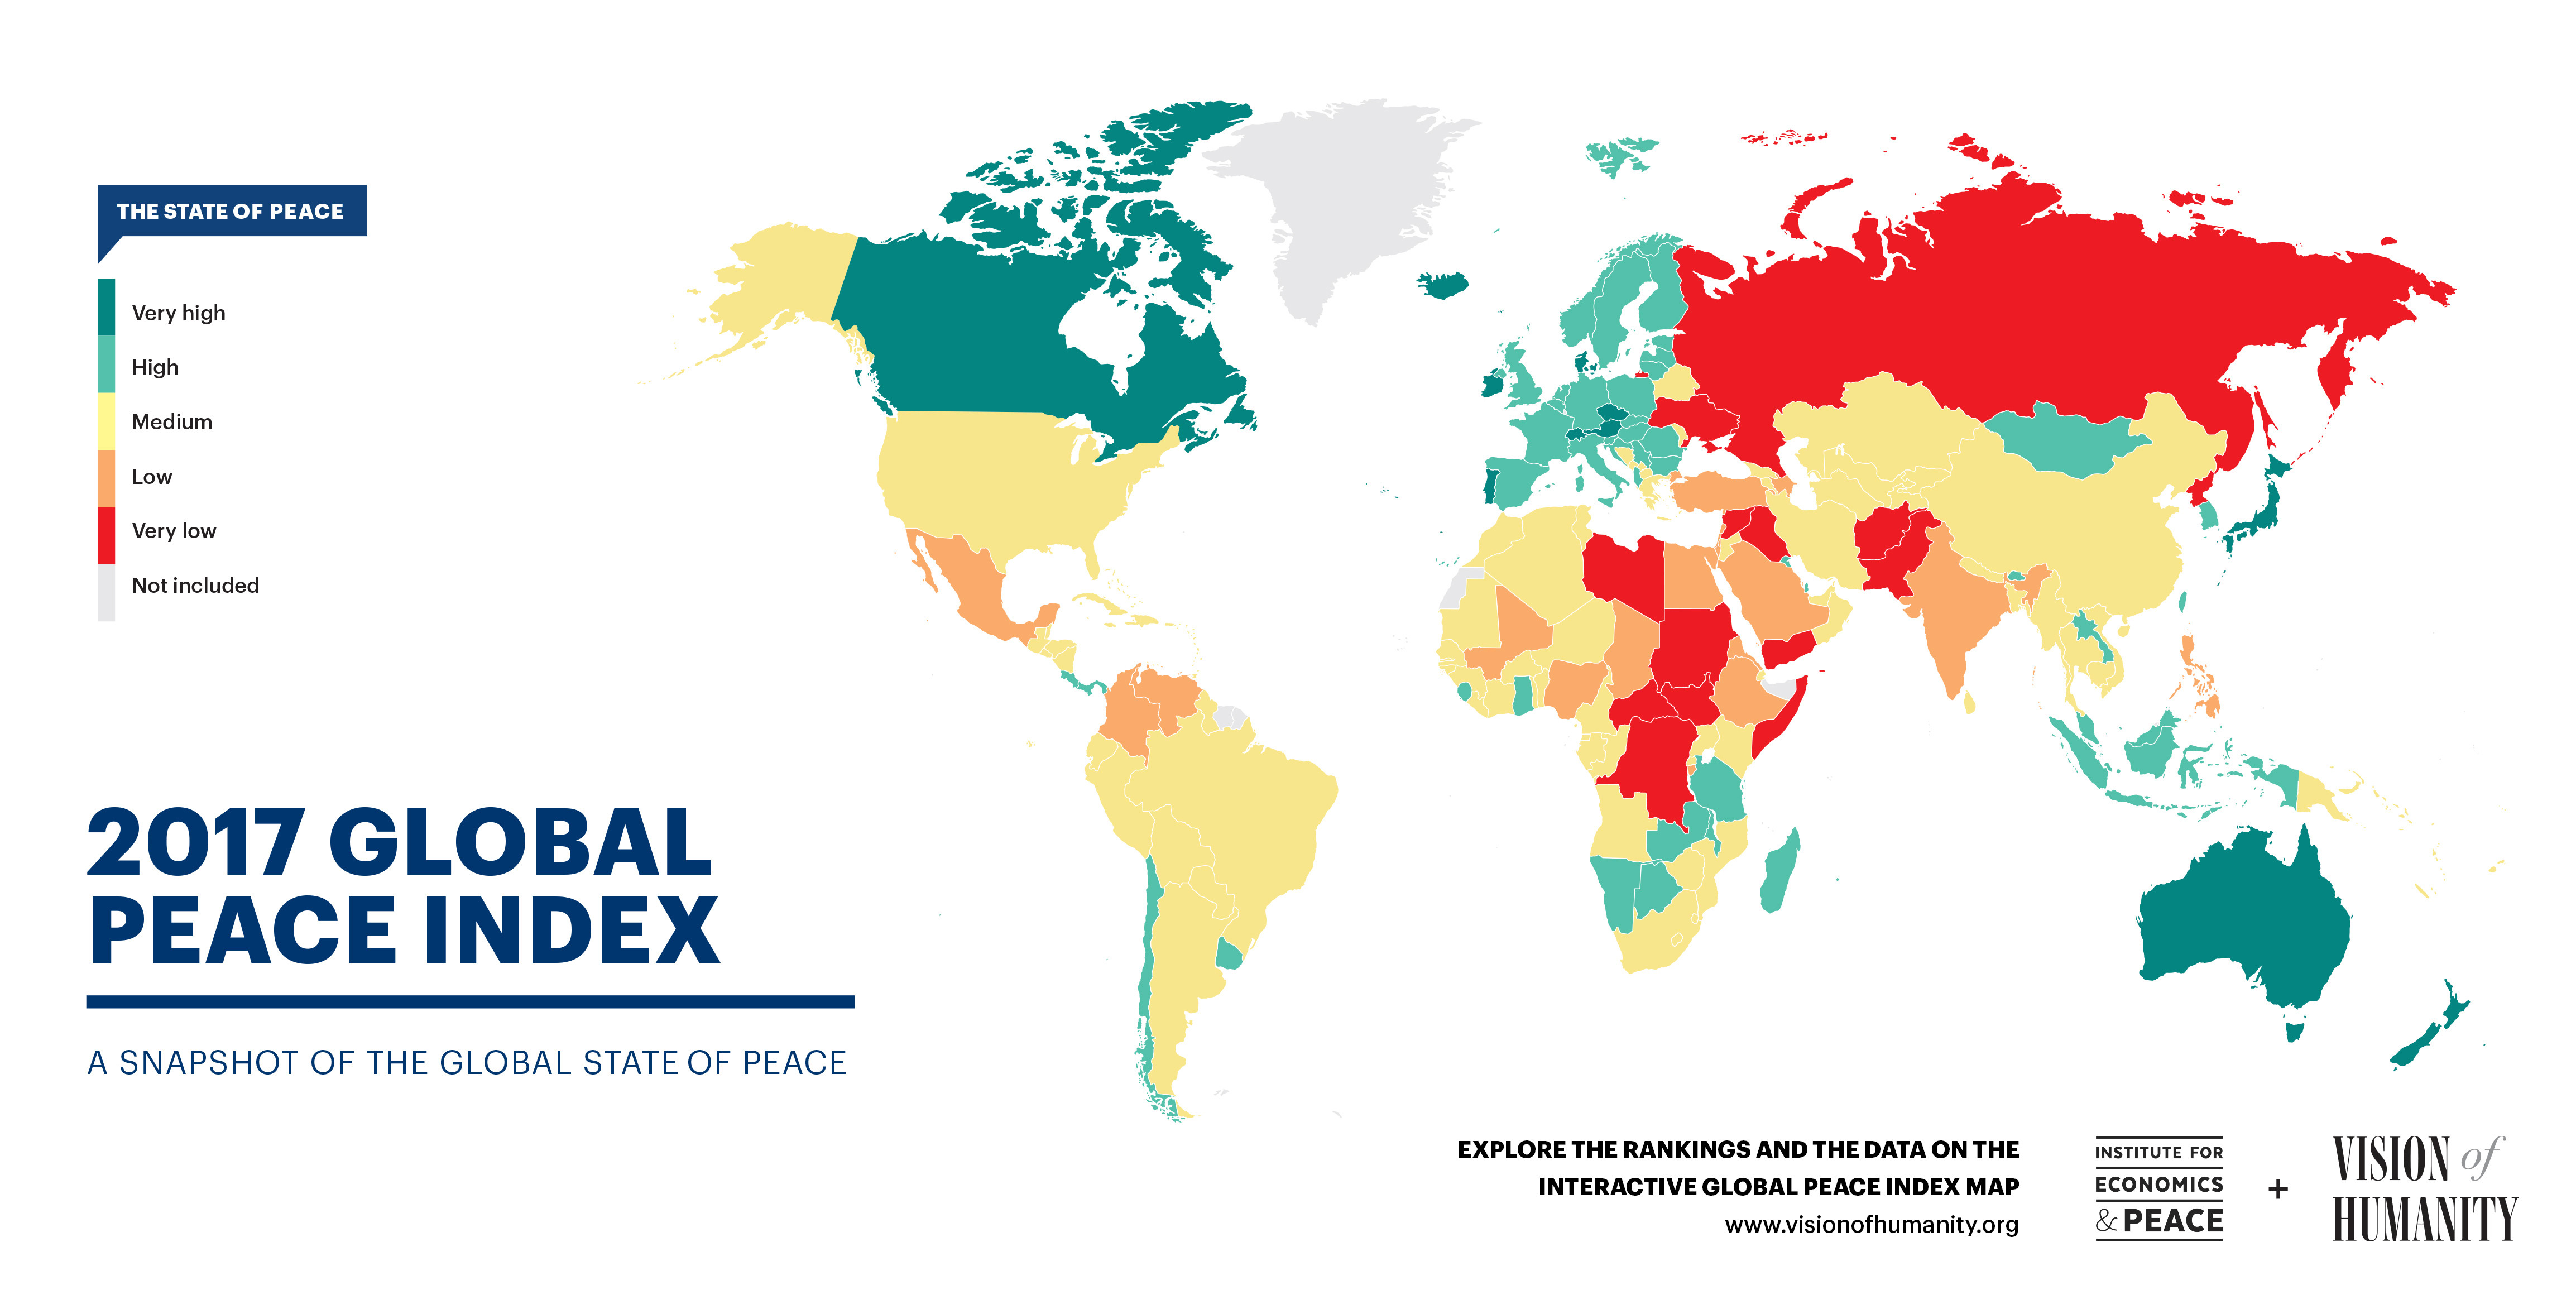 This map shows the relative state of peace across the globe